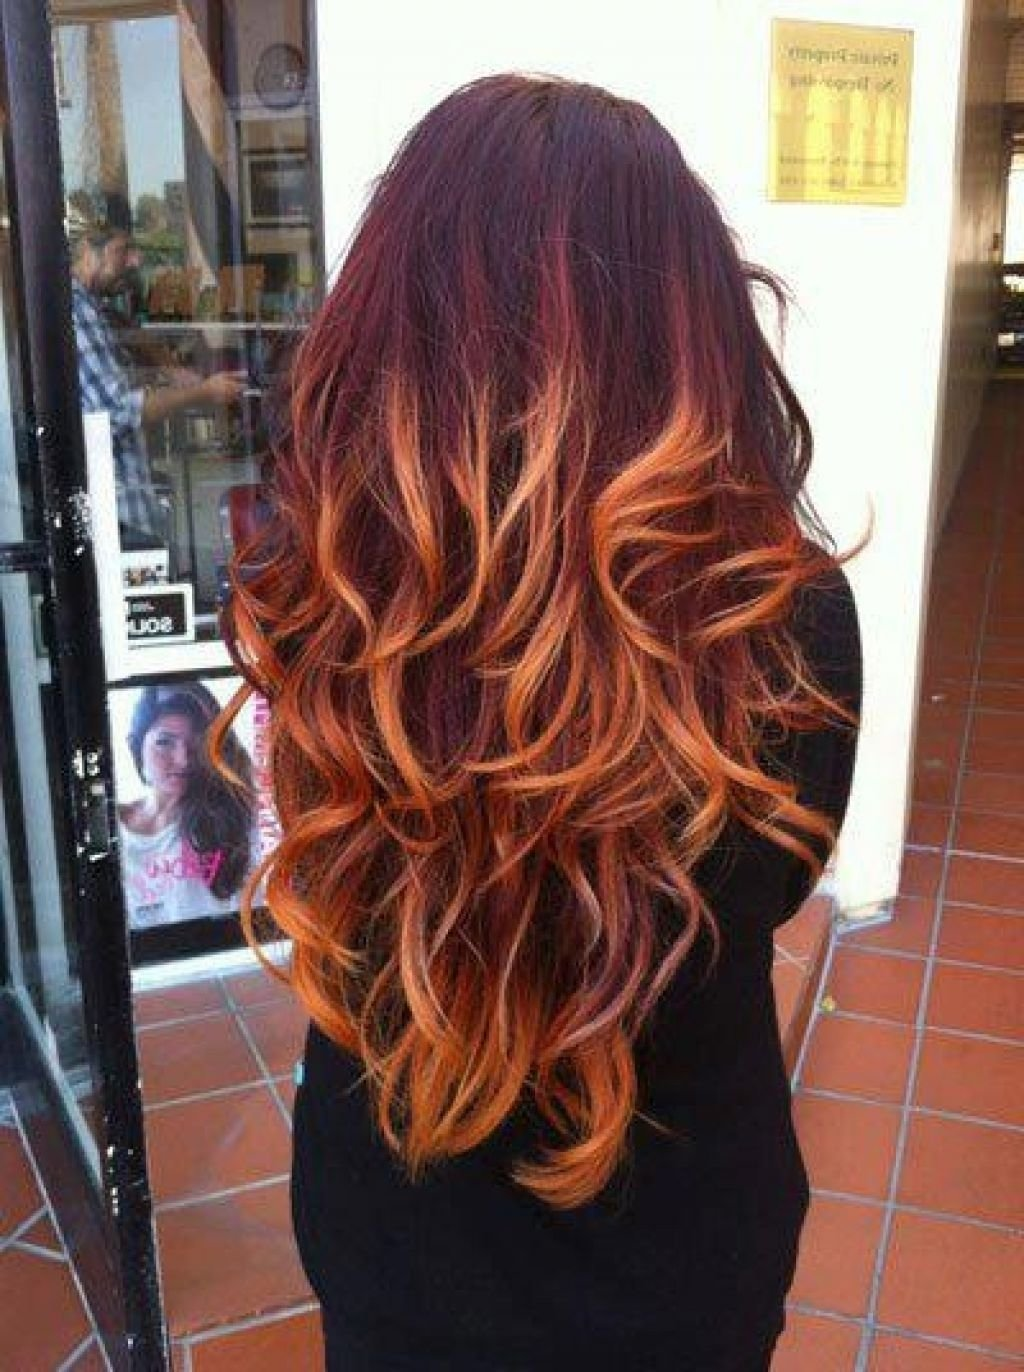 10 Stunning Red With Blonde Hair Color Ideas red ombre hair colors ideas hair color pinterest red ombre 2021